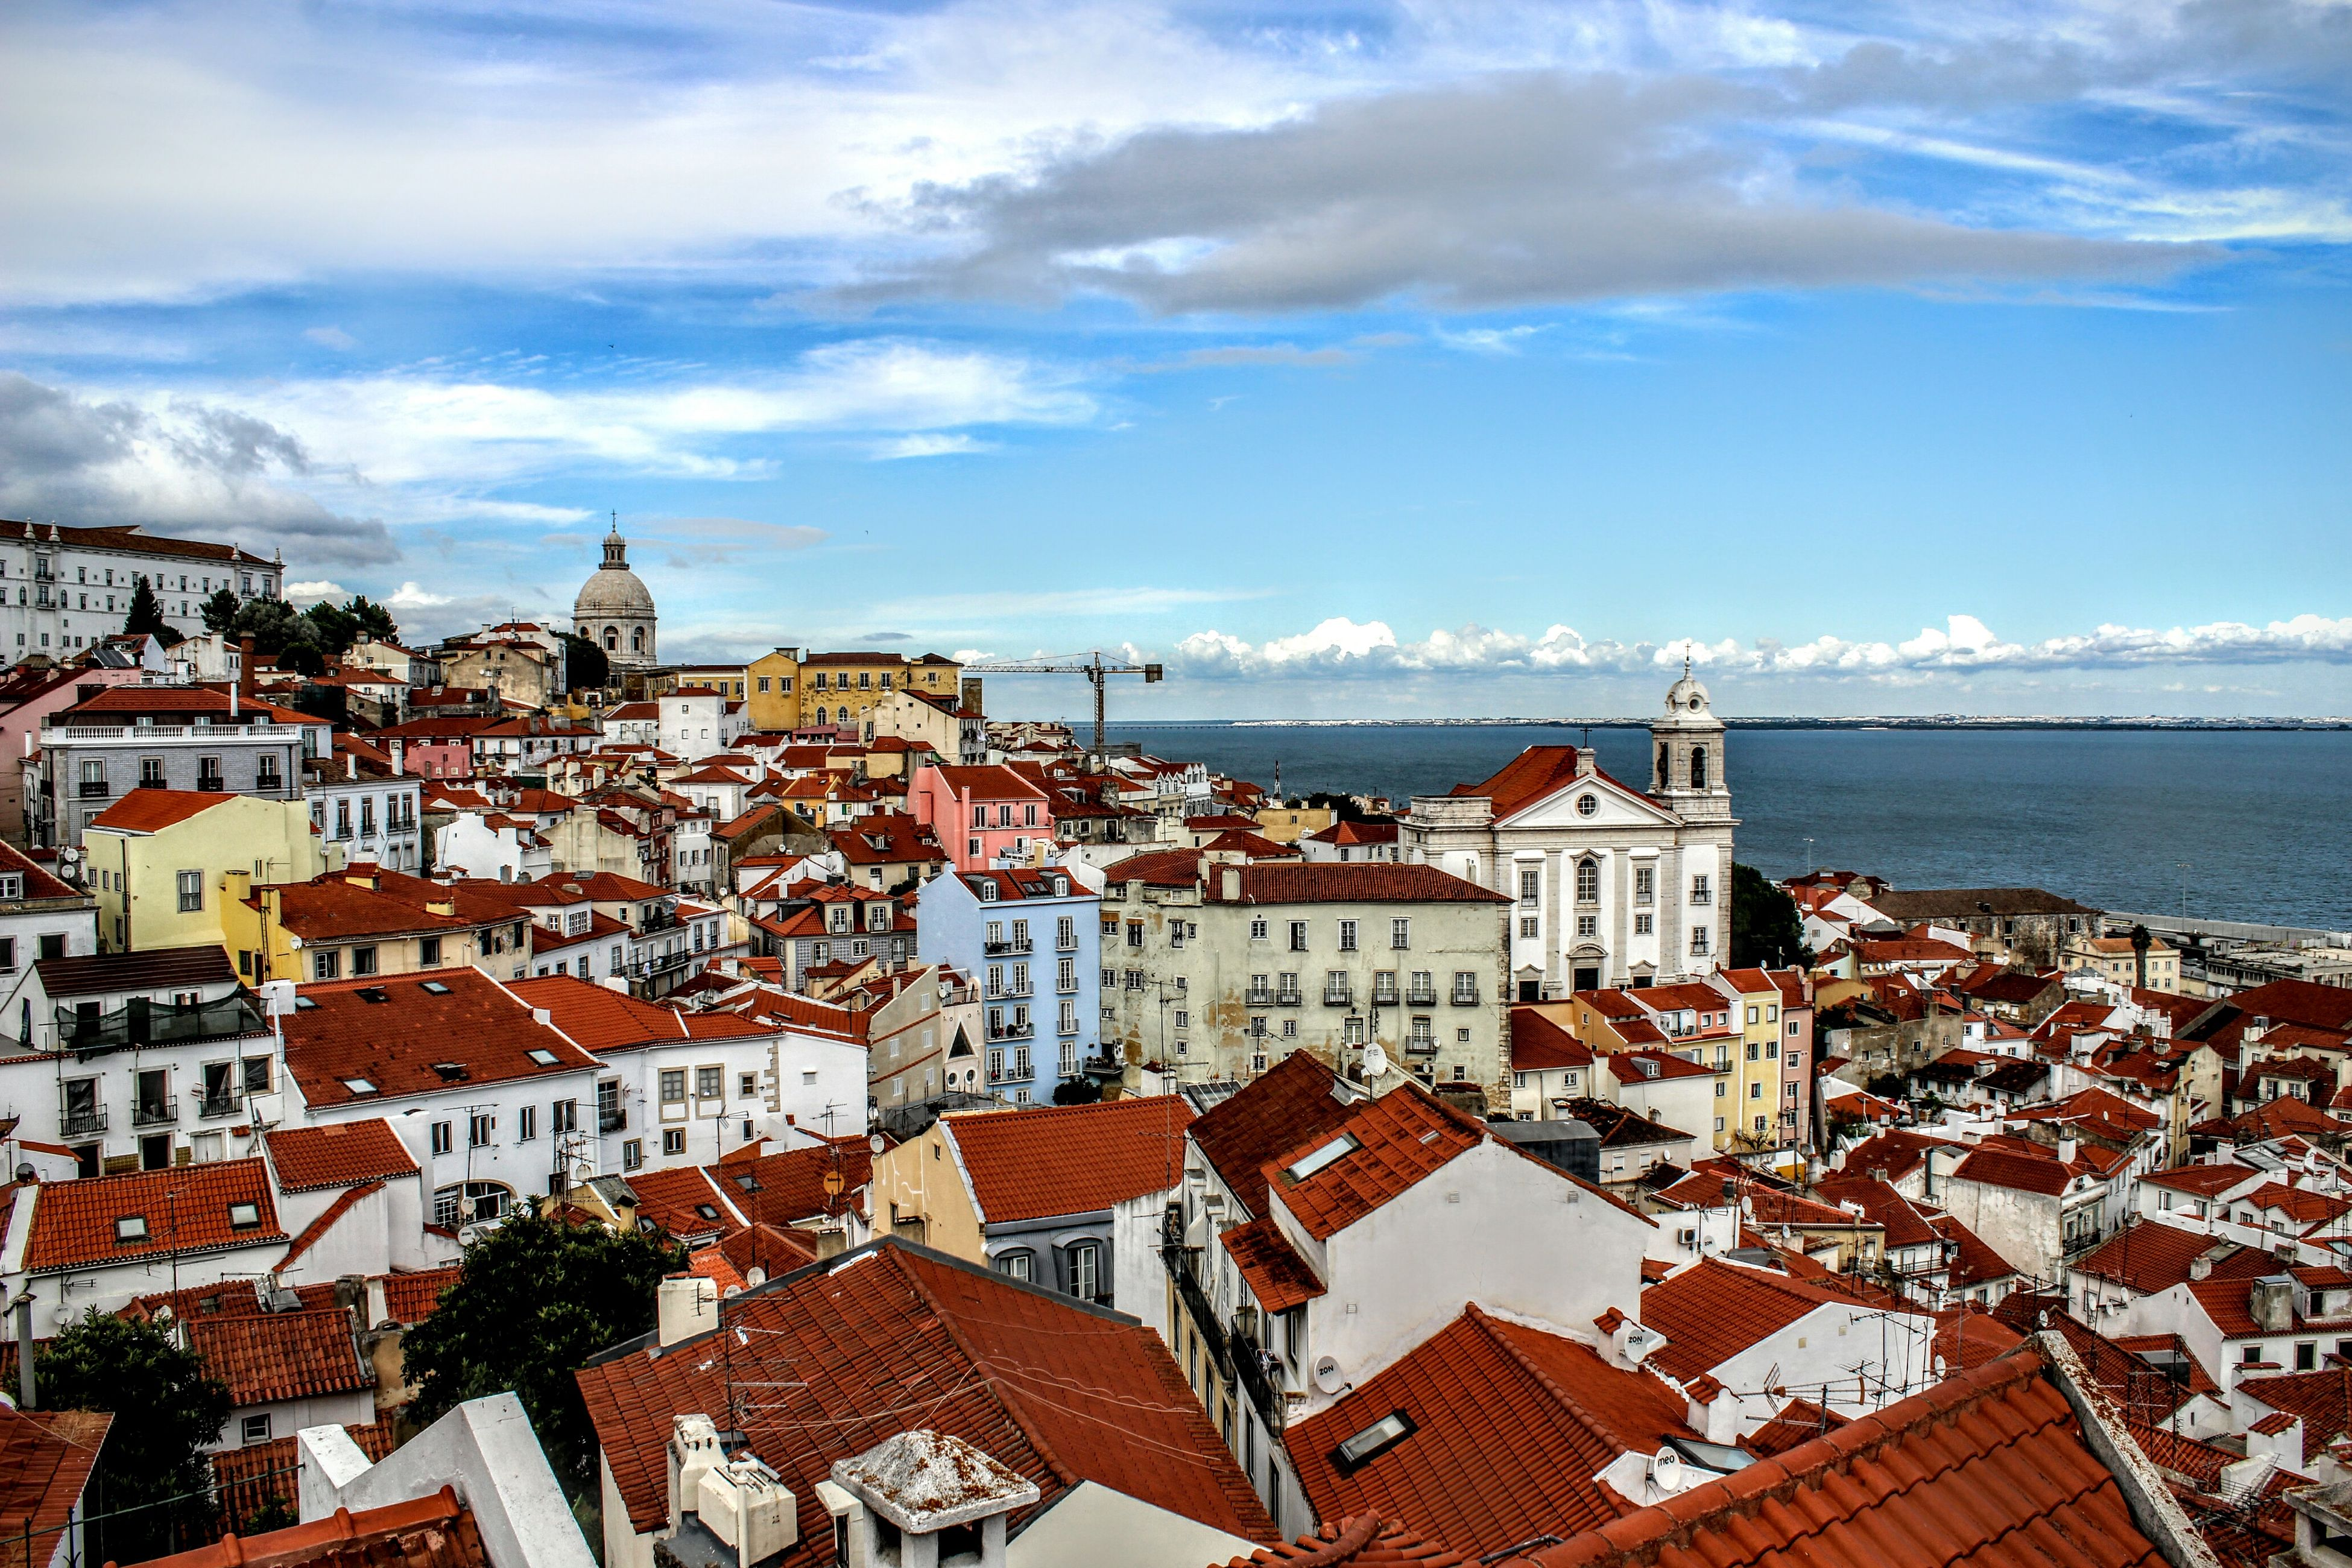 architecture, building exterior, built structure, sky, sea, roof, residential structure, water, cloud - sky, house, high angle view, residential building, town, residential district, horizon over water, townscape, cloud, city, cloudy, cityscape